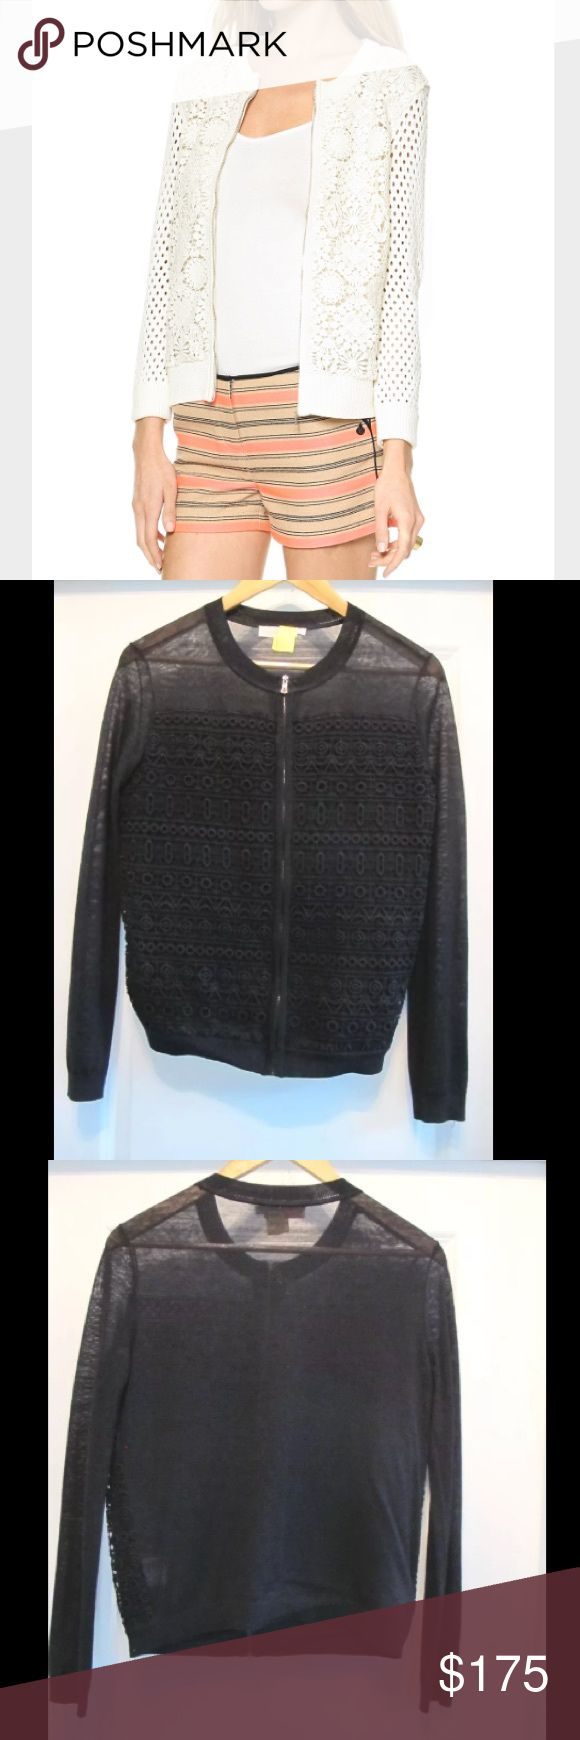 $328 RETAIL RARE TORY BURCH CROCHET JACKET SWEATER $328 + TAX RETAIL RARE TORY BURCH LACE/CROCHET ZIP UP JACKET SWEATER CARDI SIZE SMALL (flaw: tiny hole on back- worn 1x and washed)- THE PERFECT TRENDY LAYER FOR SPRING THAT MATCHES EVERYTHING- THE WHOLE DESIGN IS SO SO FLATTERING AND SOFT. FIRST PICTURE IS A SIMILAR SWEATER AND SIMILAR SILHOUETTE. IT WAS A LIMITED EDITION ITEM PURCHASED FROM NORDSTROM. TRULY A WARDROBE STAPLE MUST HAVE. •PRICED TO SELL SAME DAY, OFFERS WELCOME THROUGH THE…